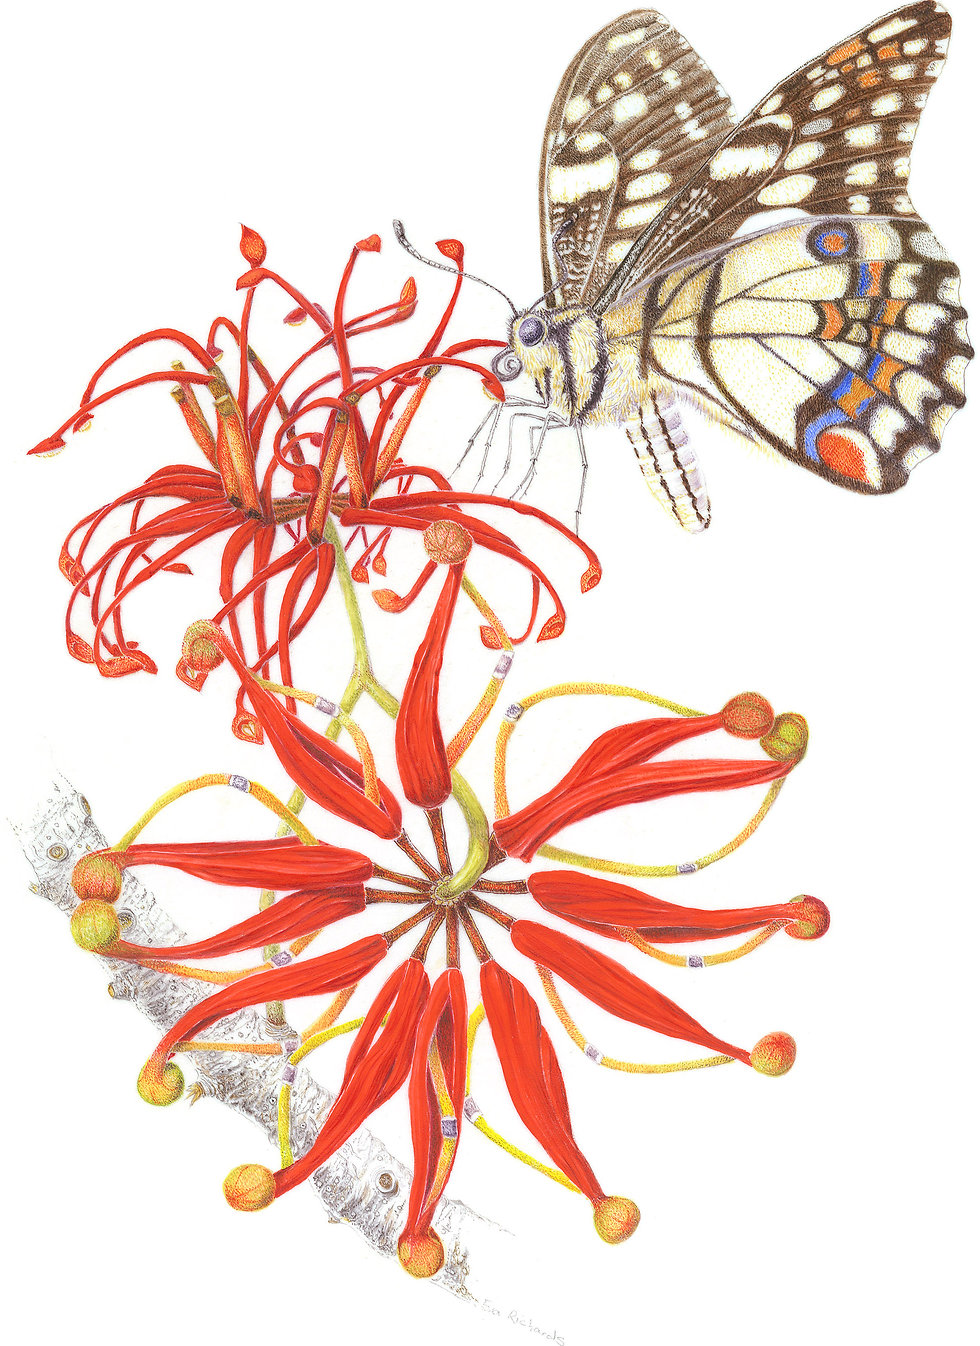 eva richards, botanical artist, botanical art, brisbane, australia, artist, arti, local artist